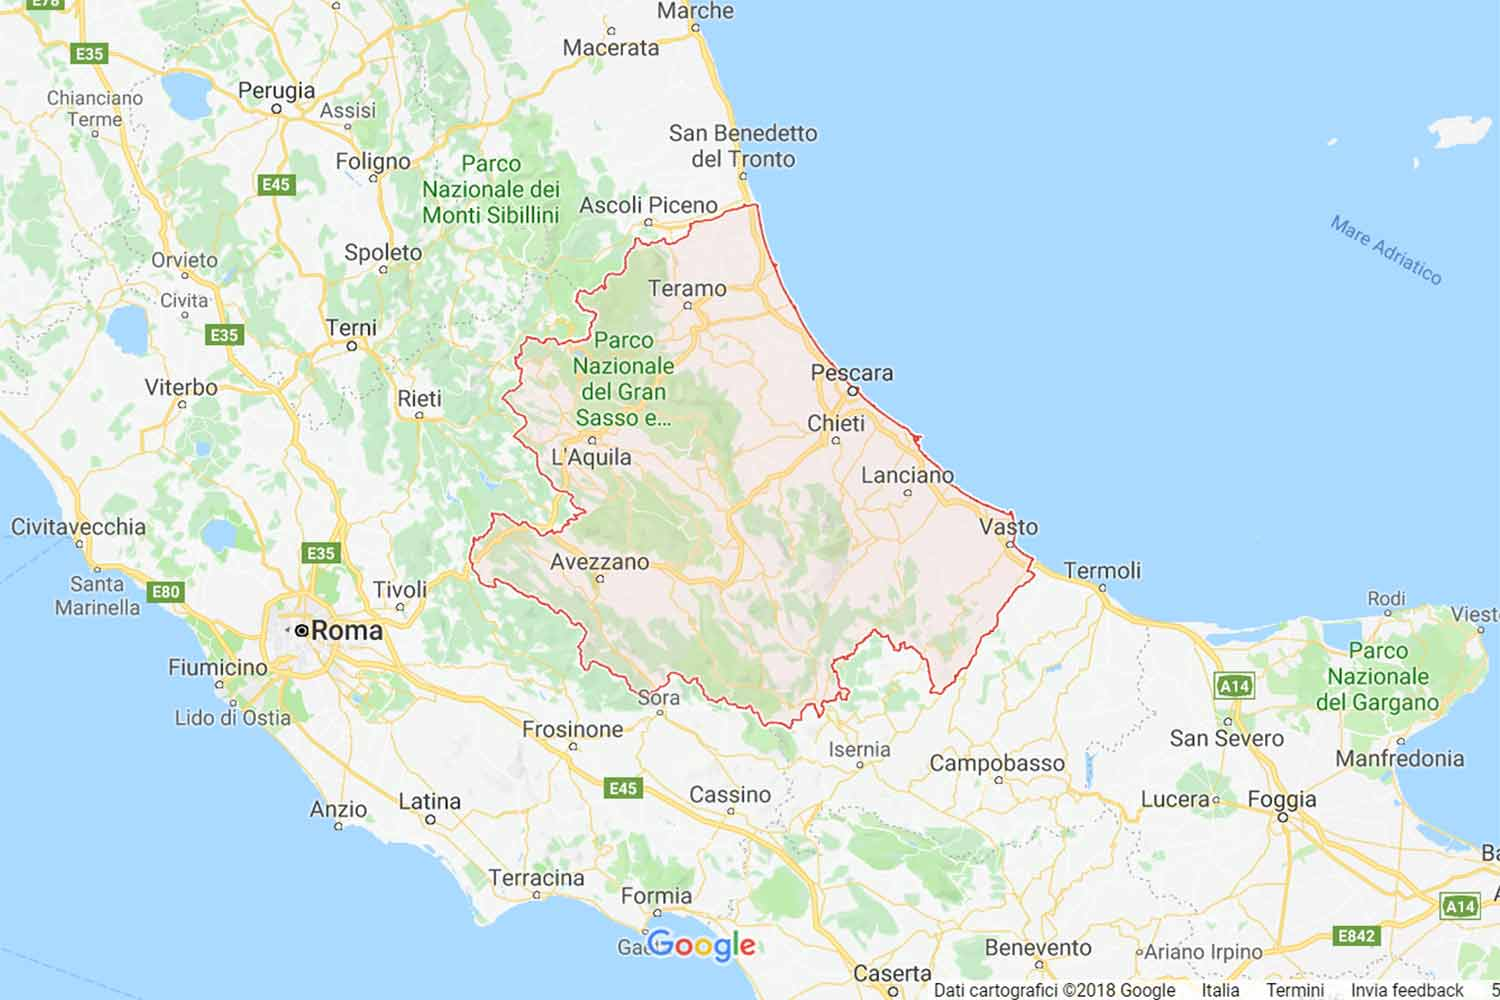 Abruzzo - Chieti - Filetto Preventivi Veloci google maps